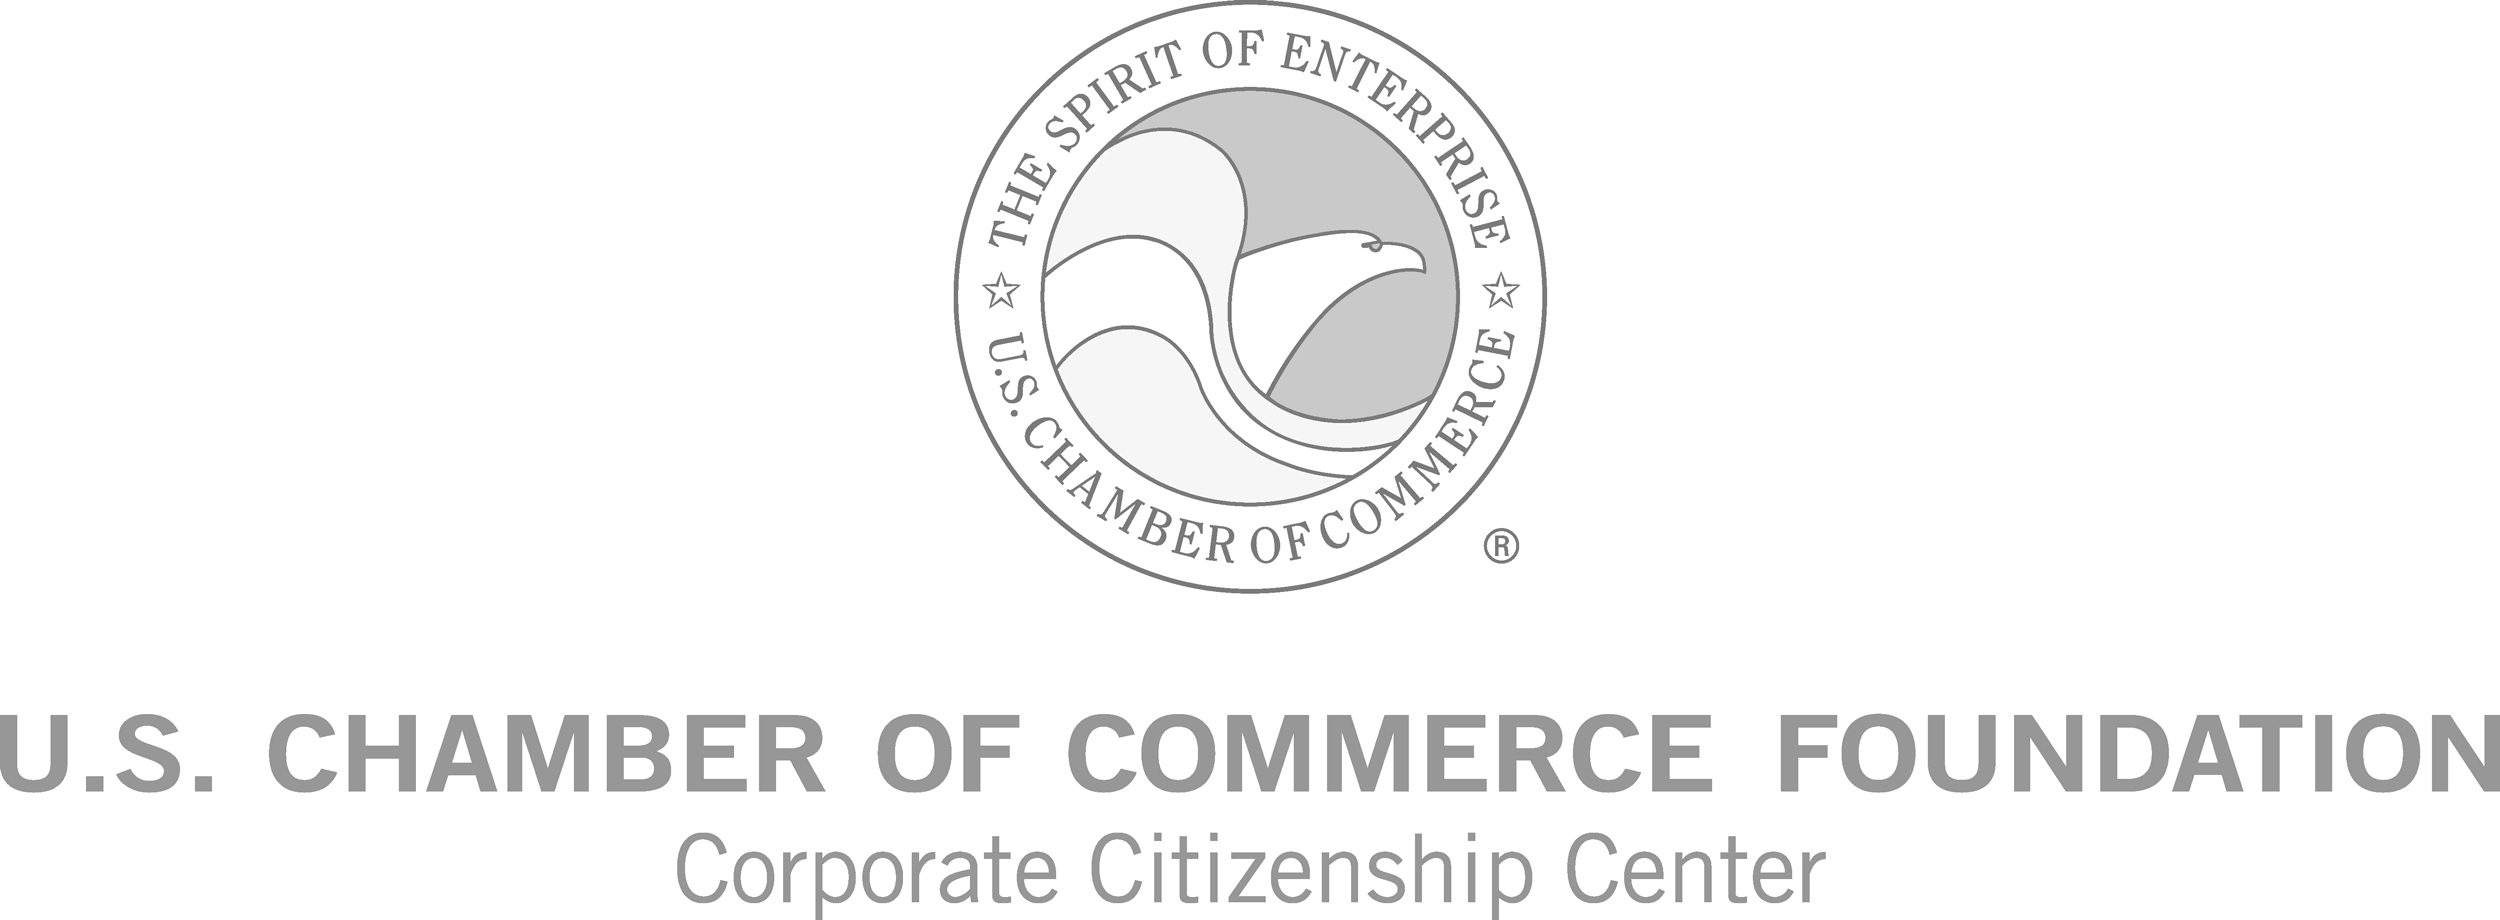 U.S. Chamber of Commerce Foundation